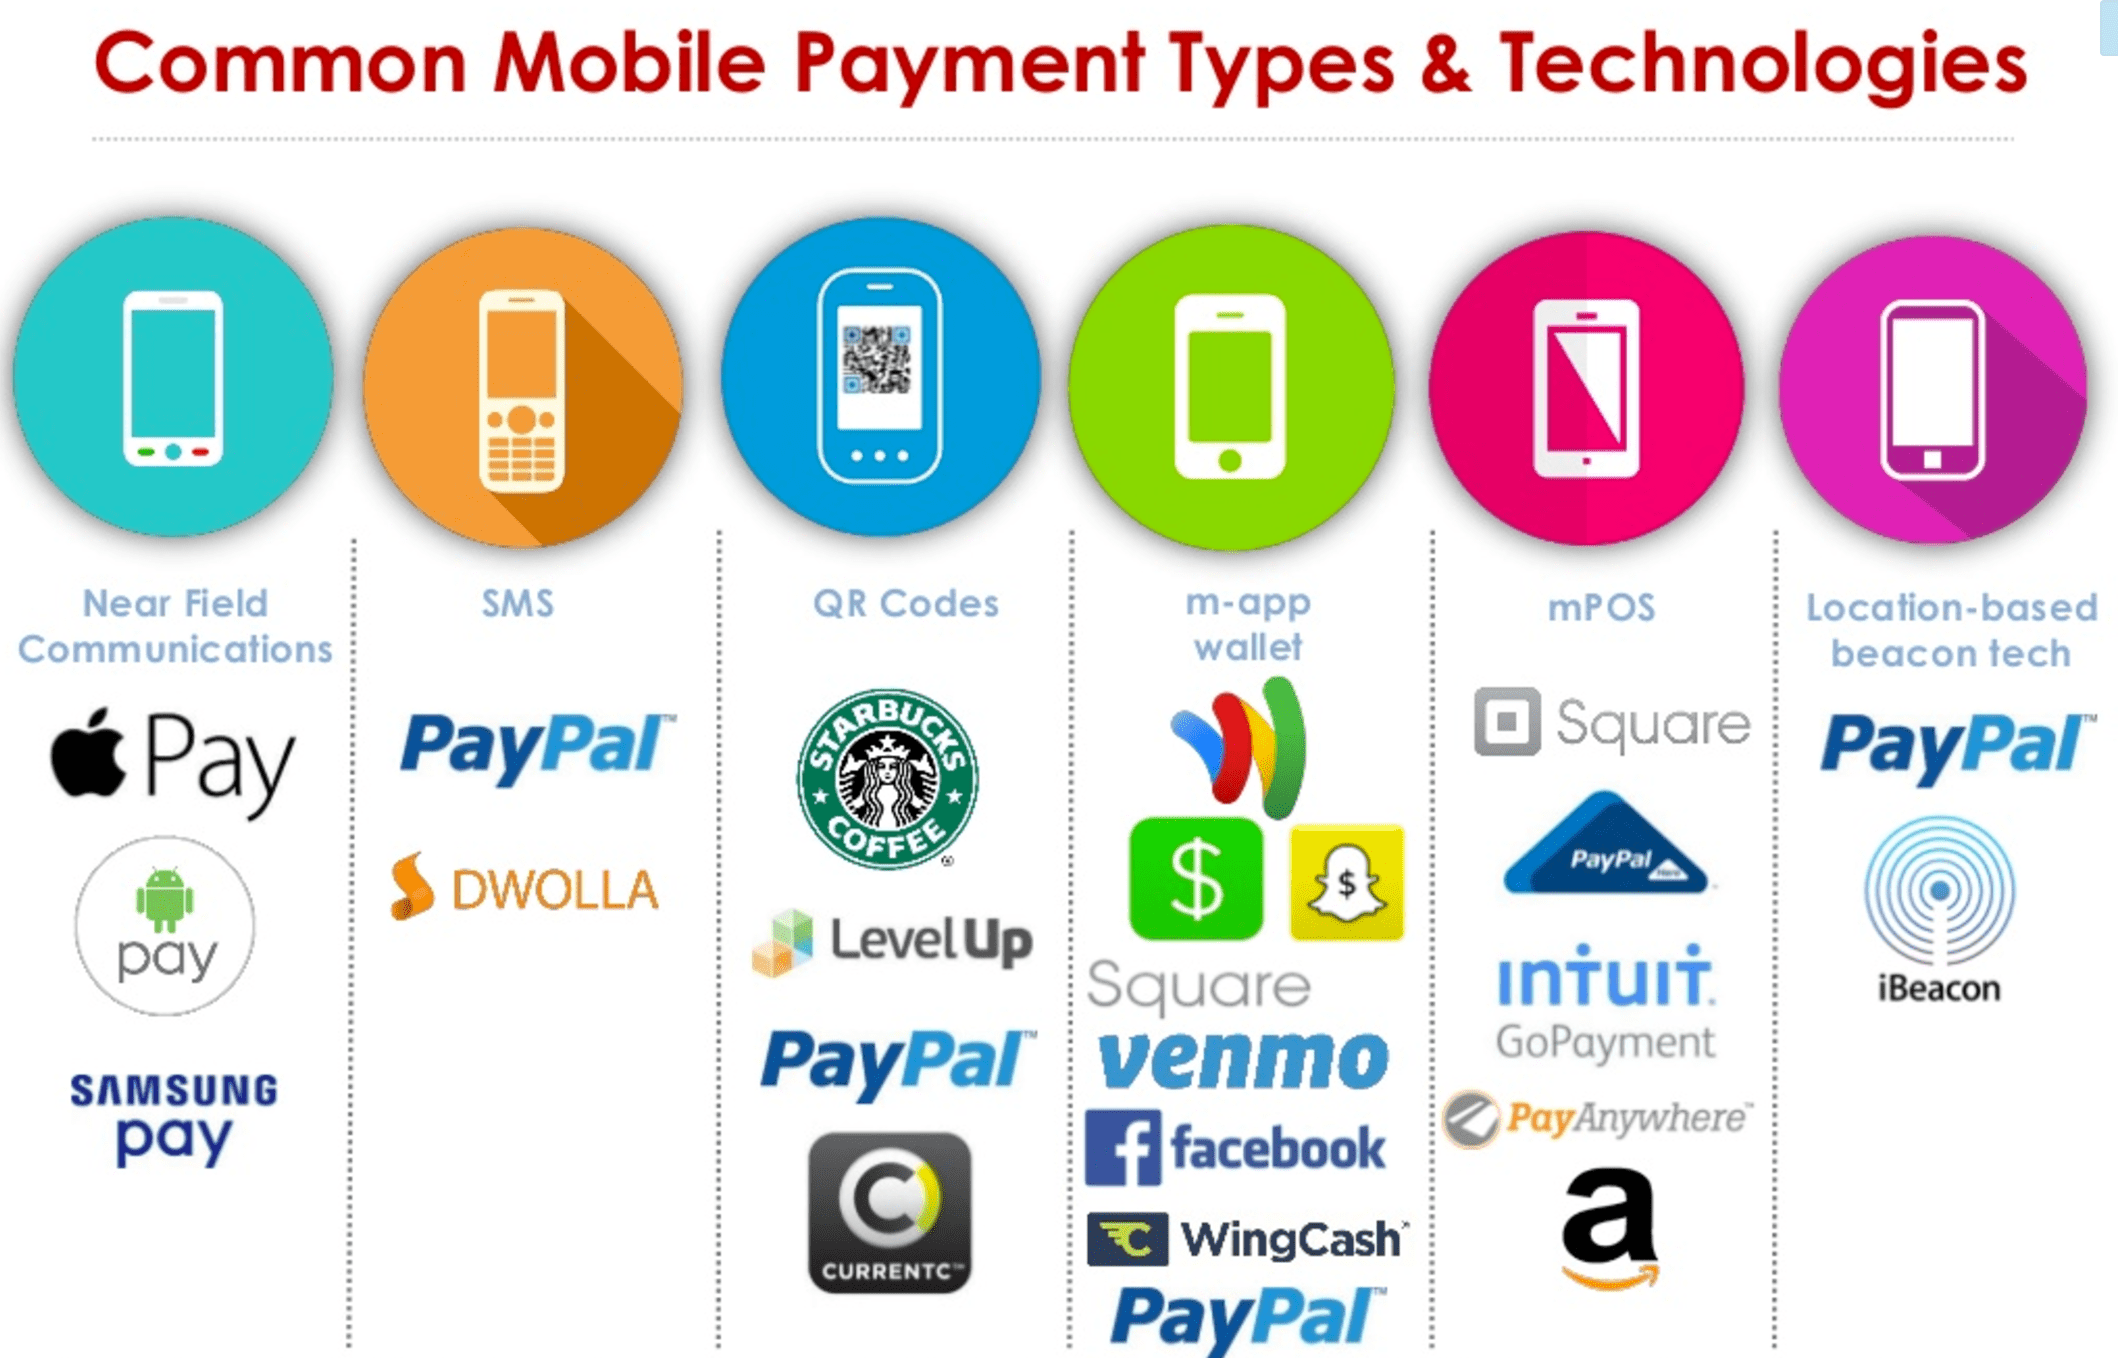 Common Mobile Payment Types And Technologies